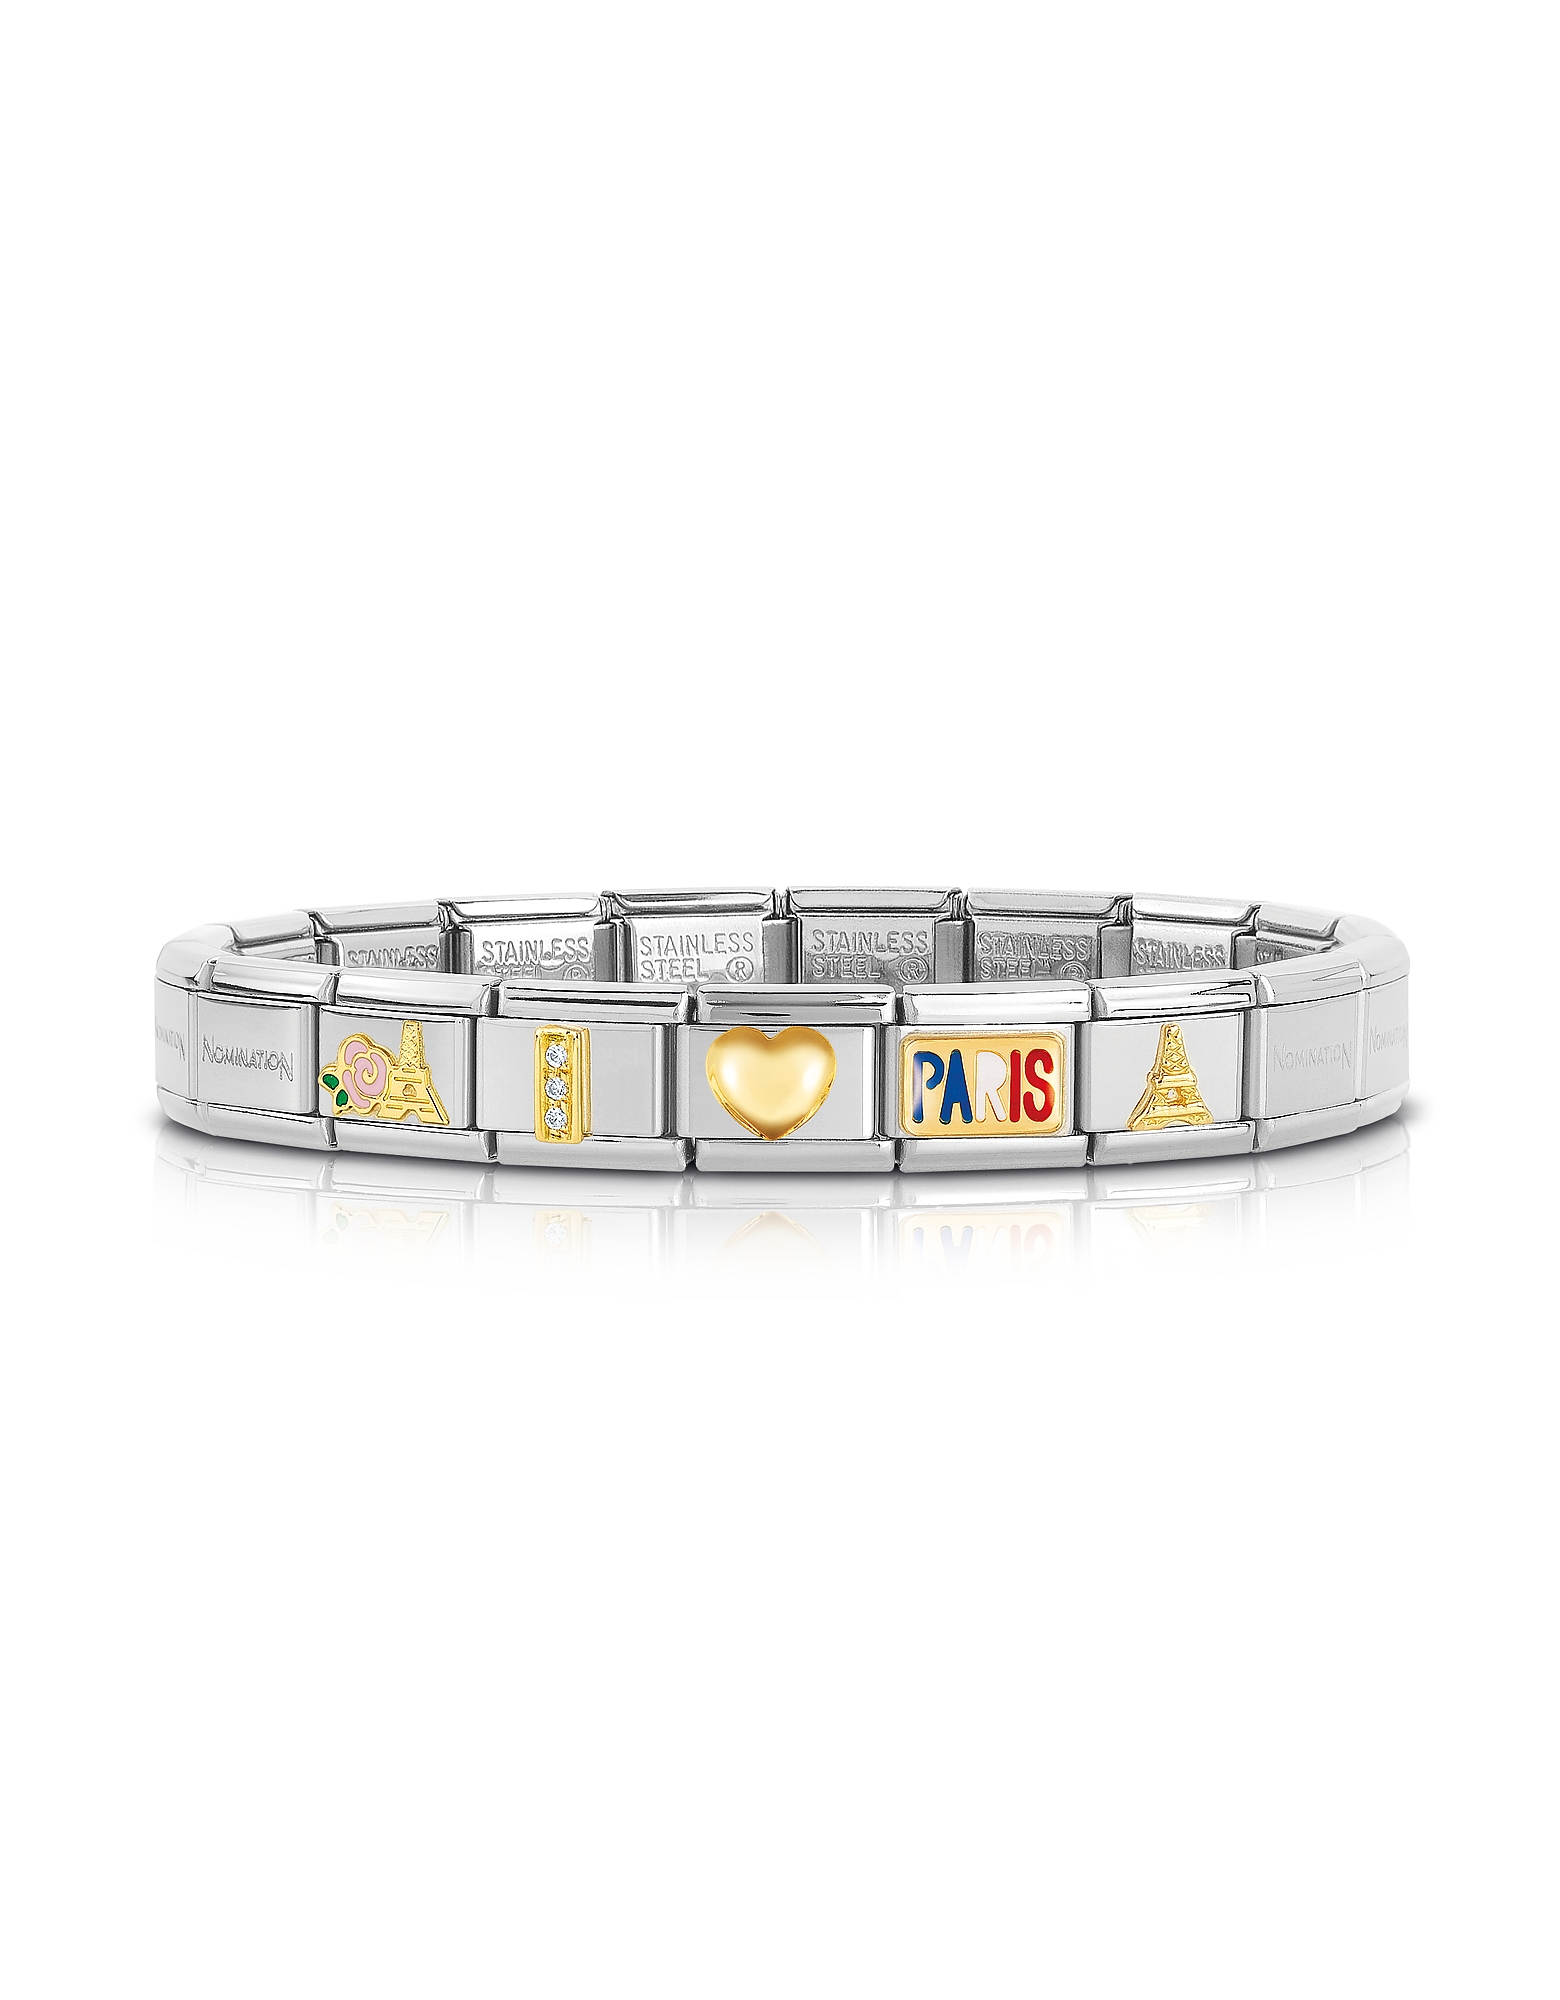 Nomination Bracelets, Classic I Love Paris Gold and Stainless Steel Bracelet w/ Cubic Zirconia